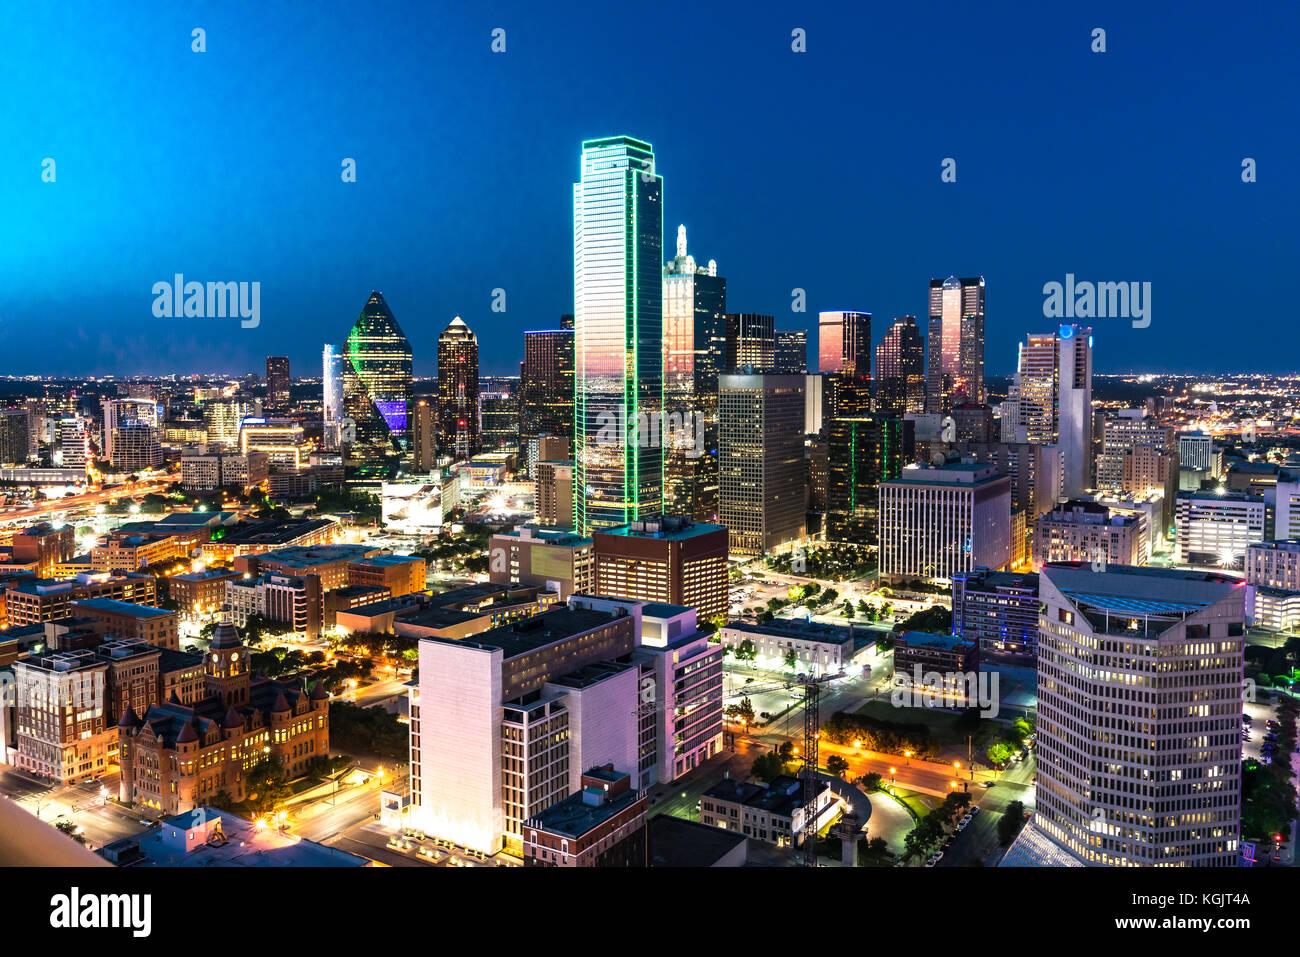 Aerial view of Dallas, Texas city skyline at night - Stock Image